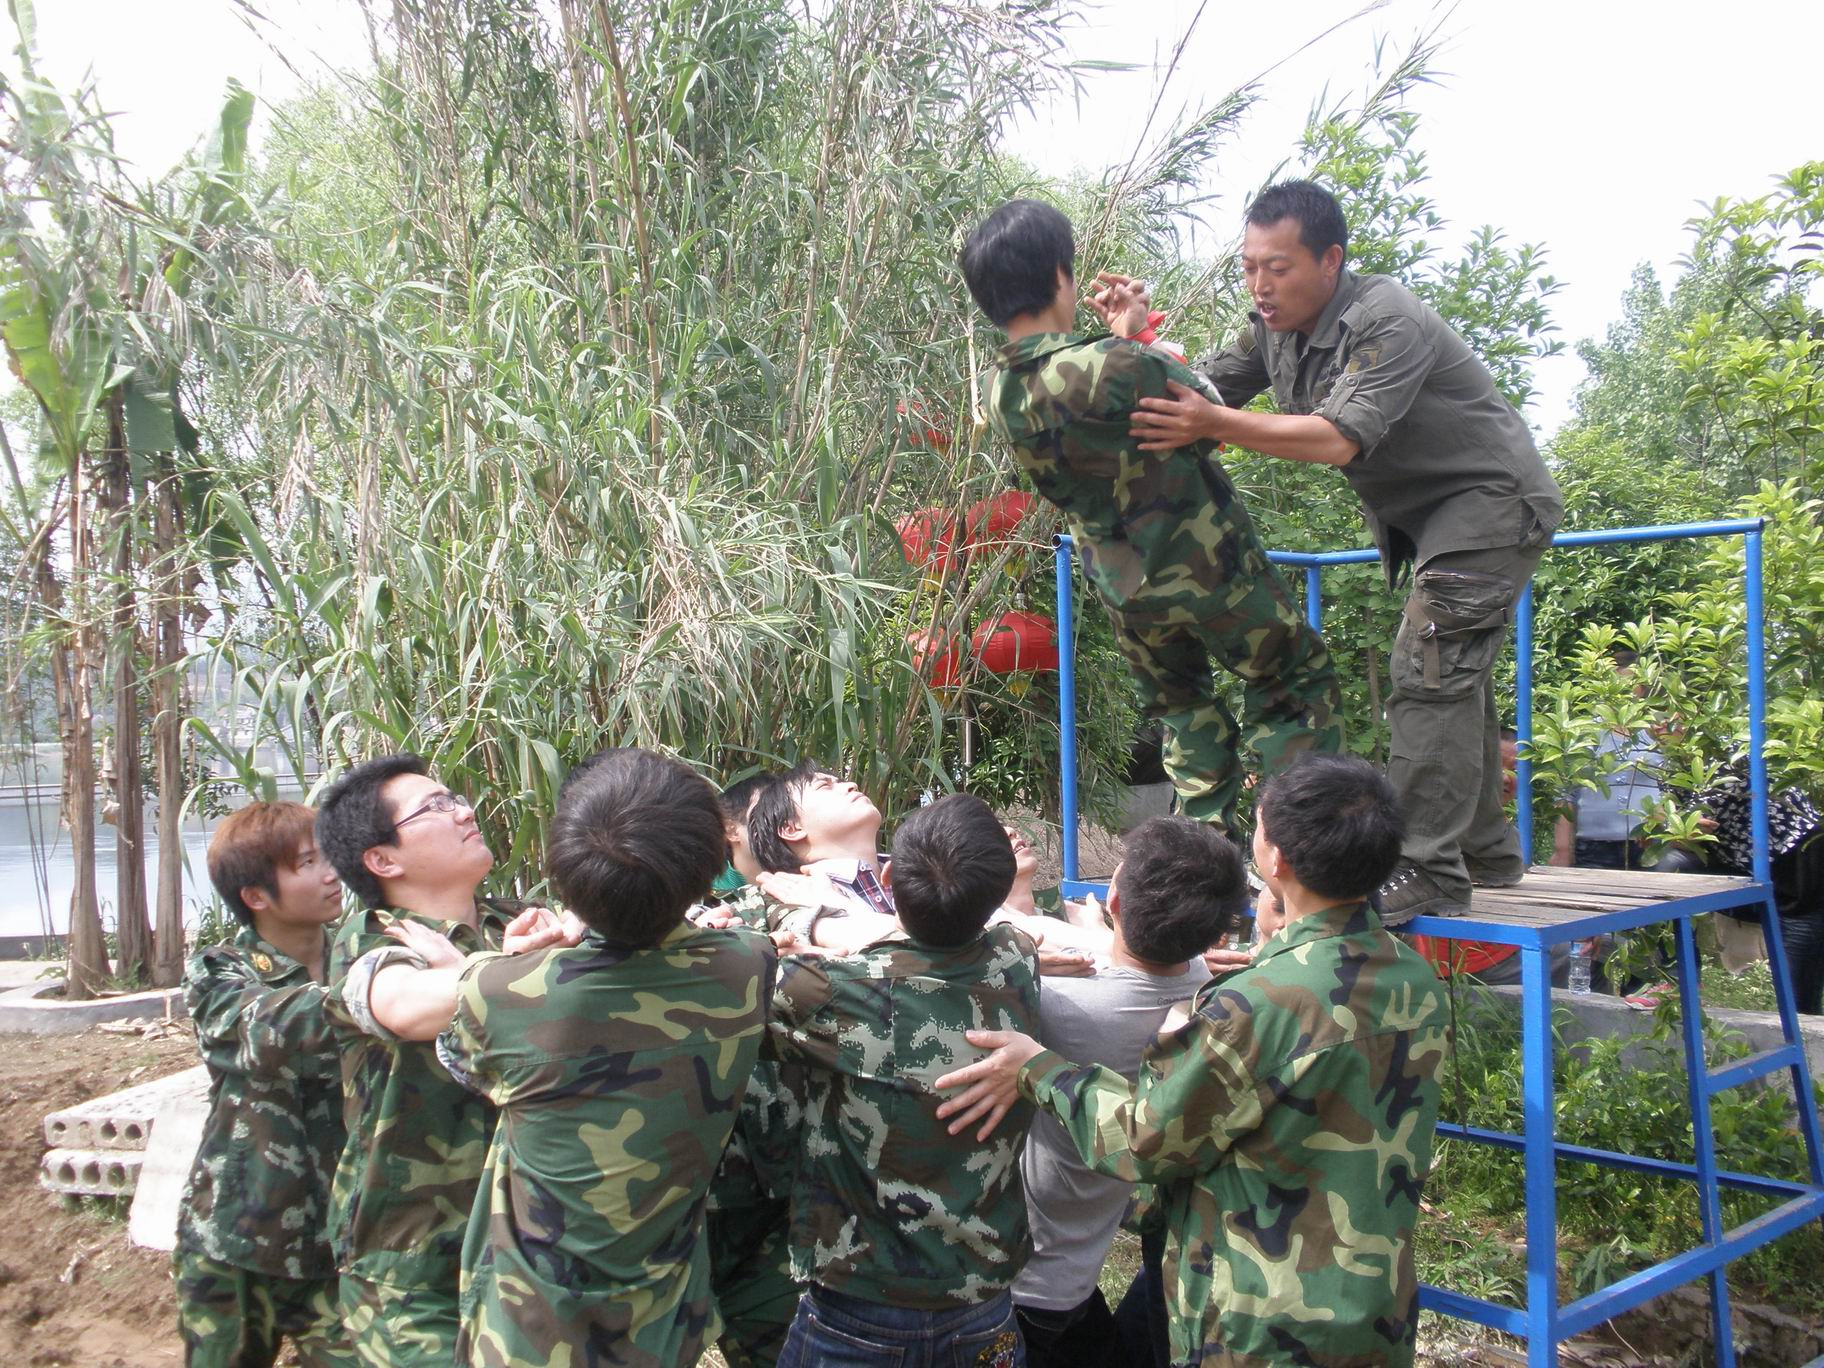 Outdoor expand training in 2012